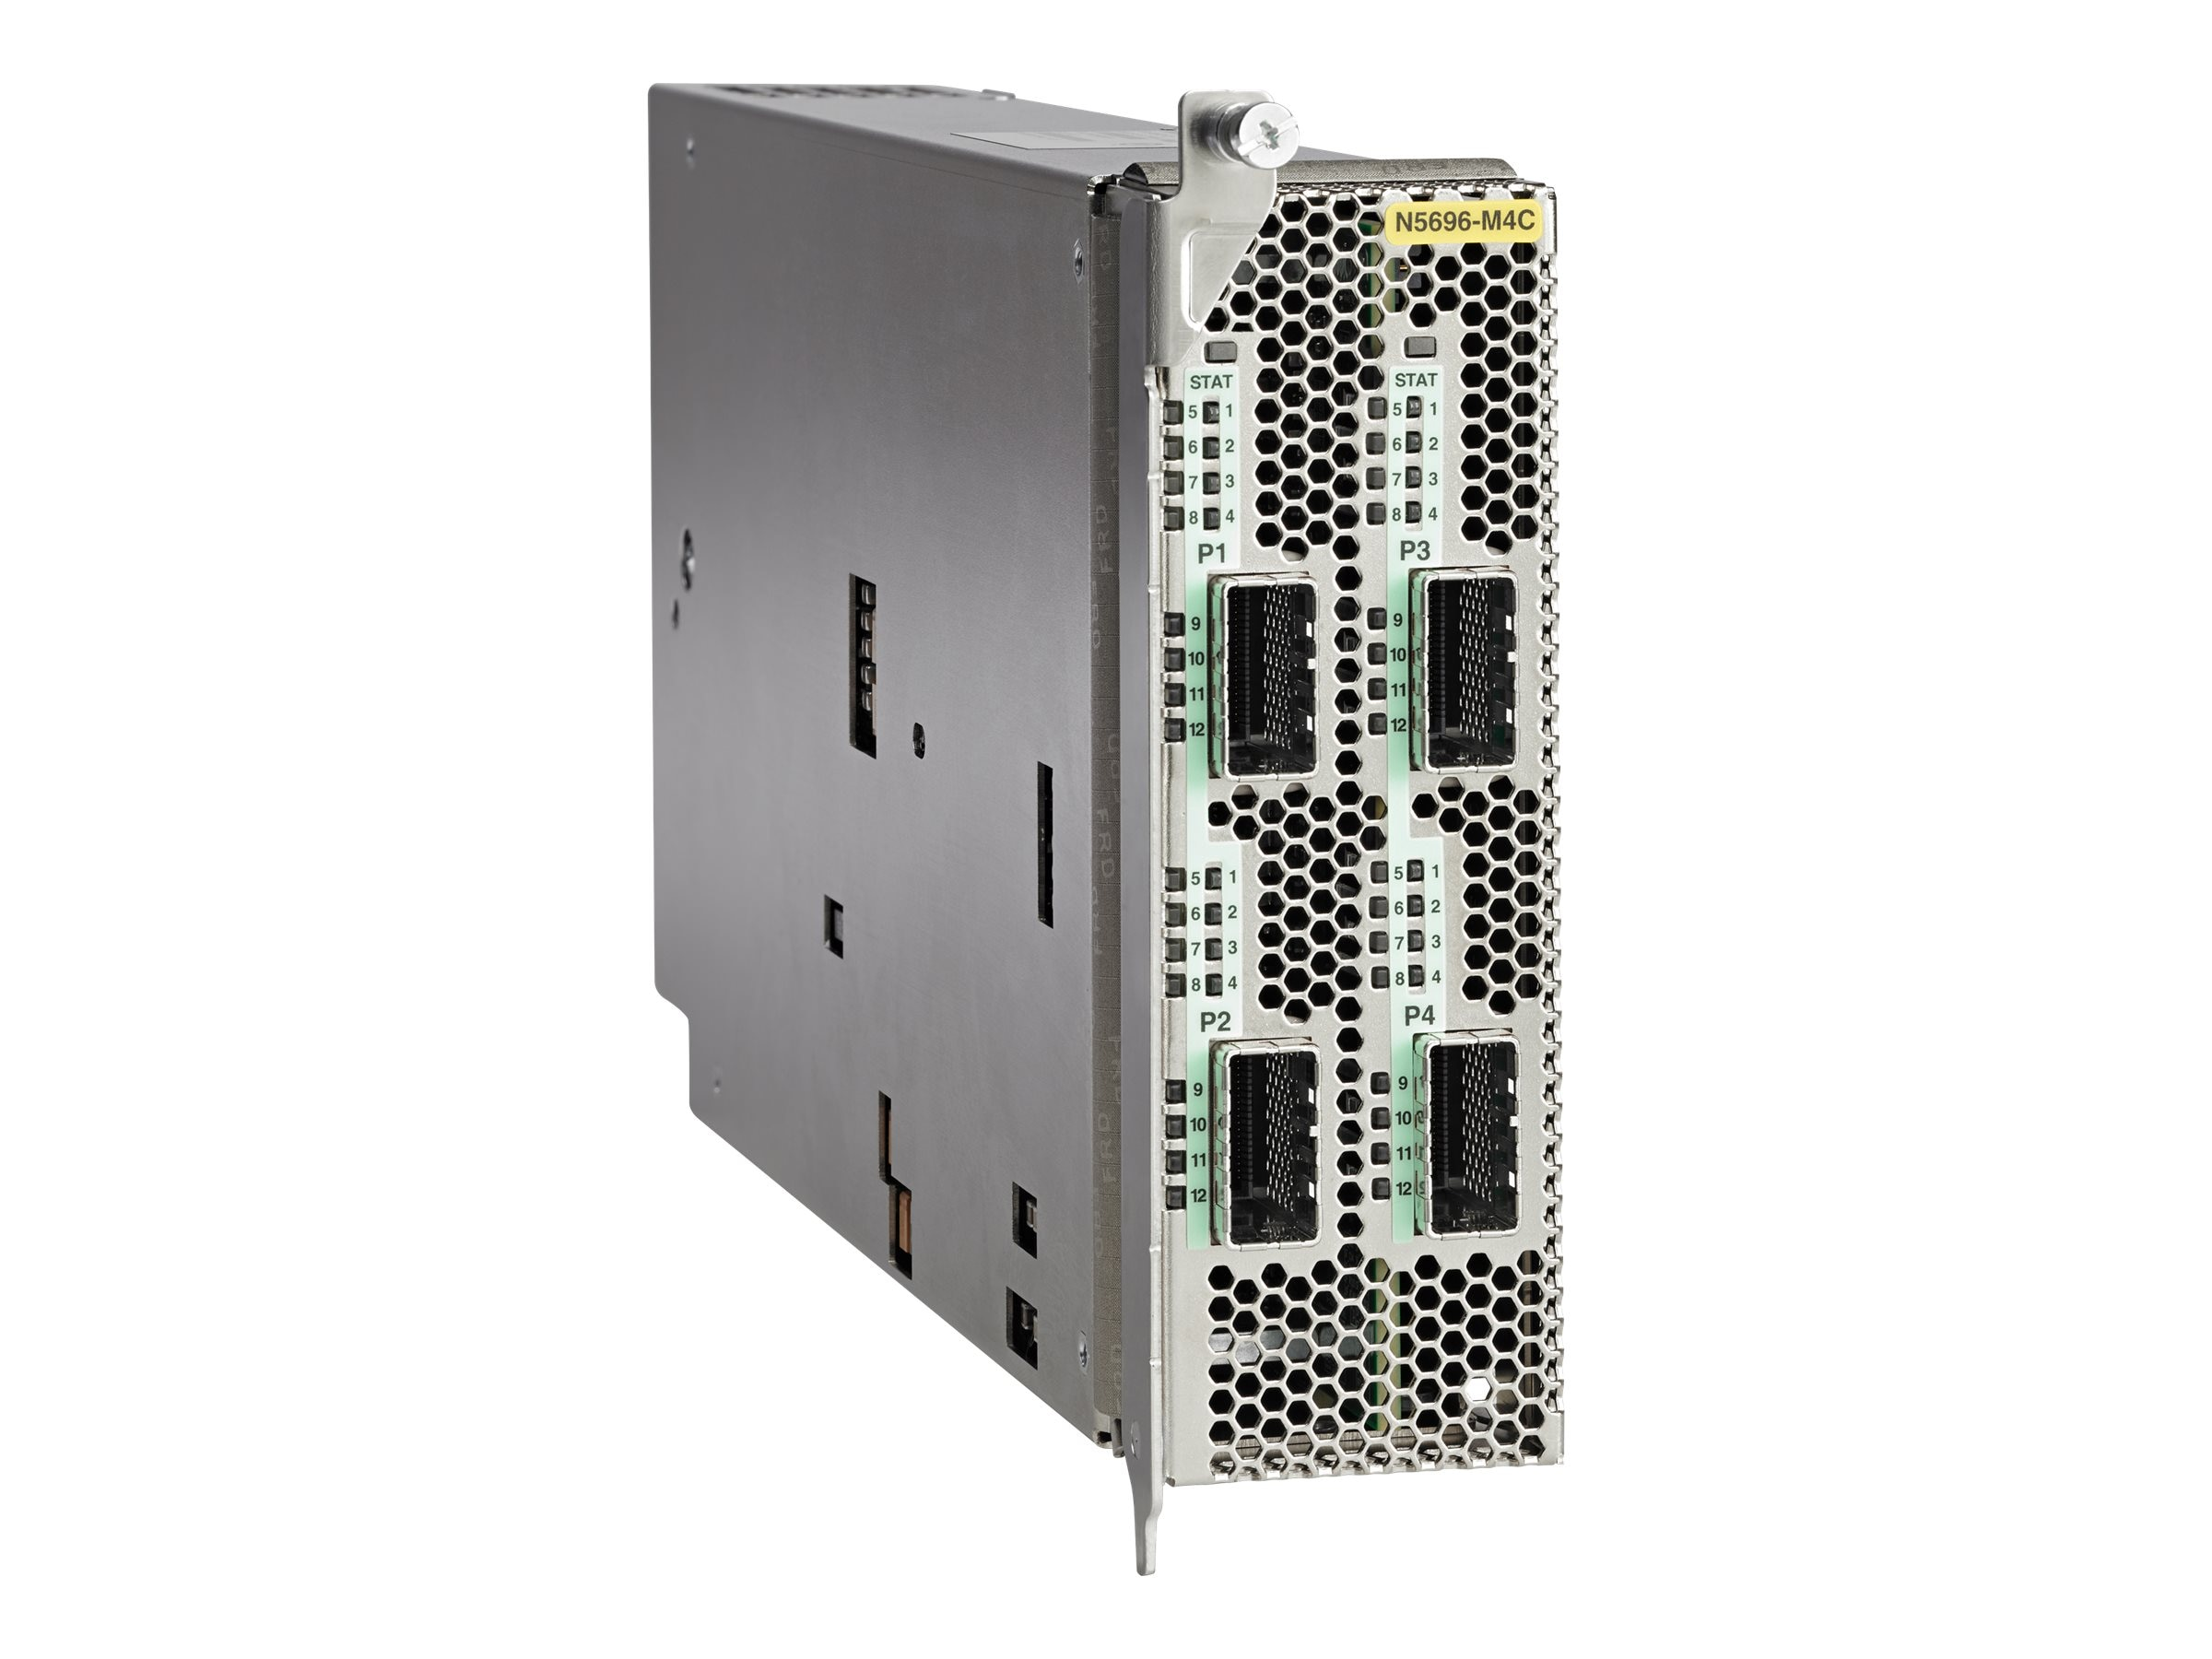 Cisco Nexus 5696Q 4-Port 100GE Ethernet Chassis Module (Spare), N5696-M4C=, 31262071, Network Device Modules & Accessories